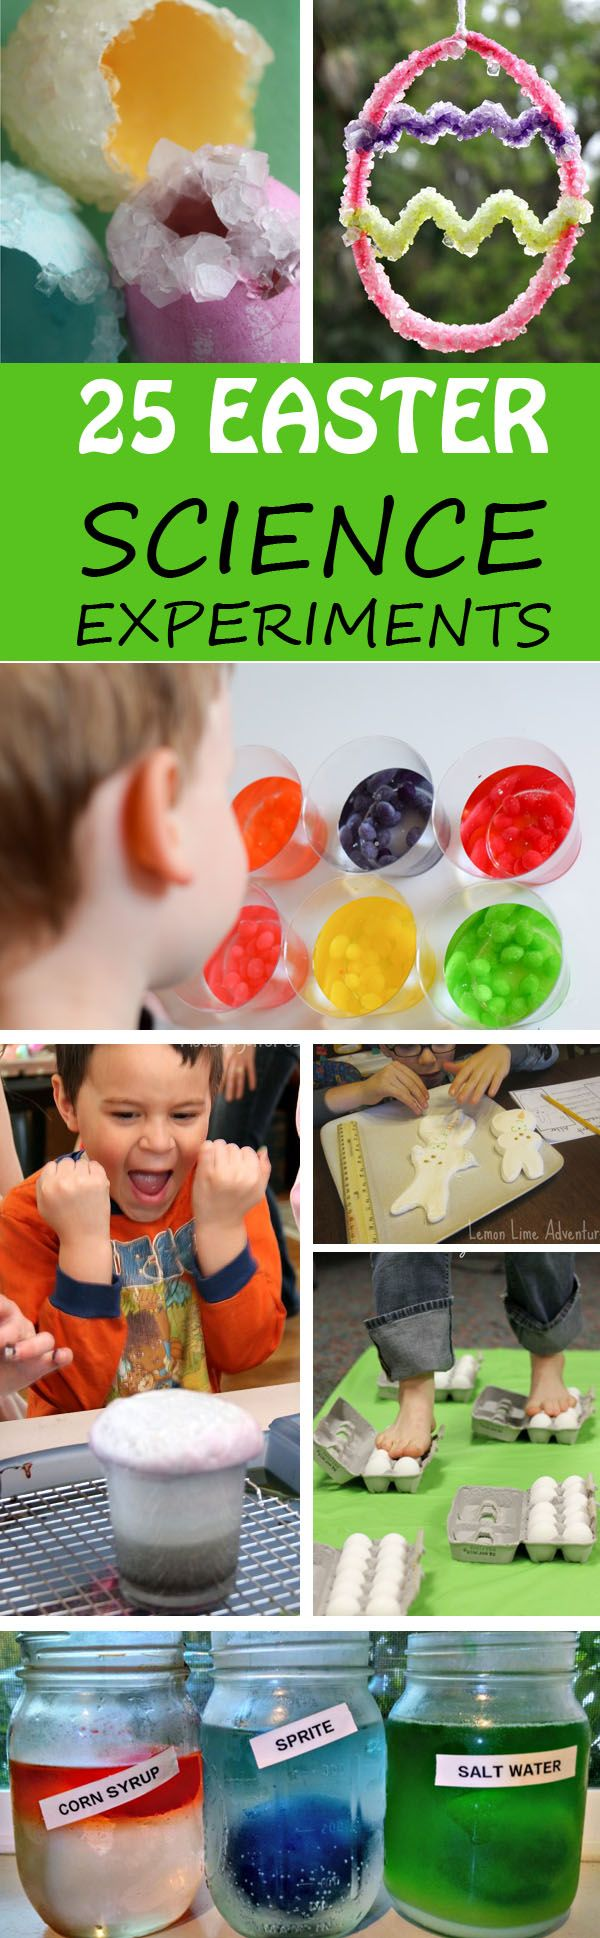 25 fun and easy Easter science experiments for kids that the entire family will enjoy. Experiment with eggs, carrots and Easter candy (peeps & jelly beans). Science experiments for toddlers, preschoolers, kindergartners and older kids.  at Non Toy Gifts